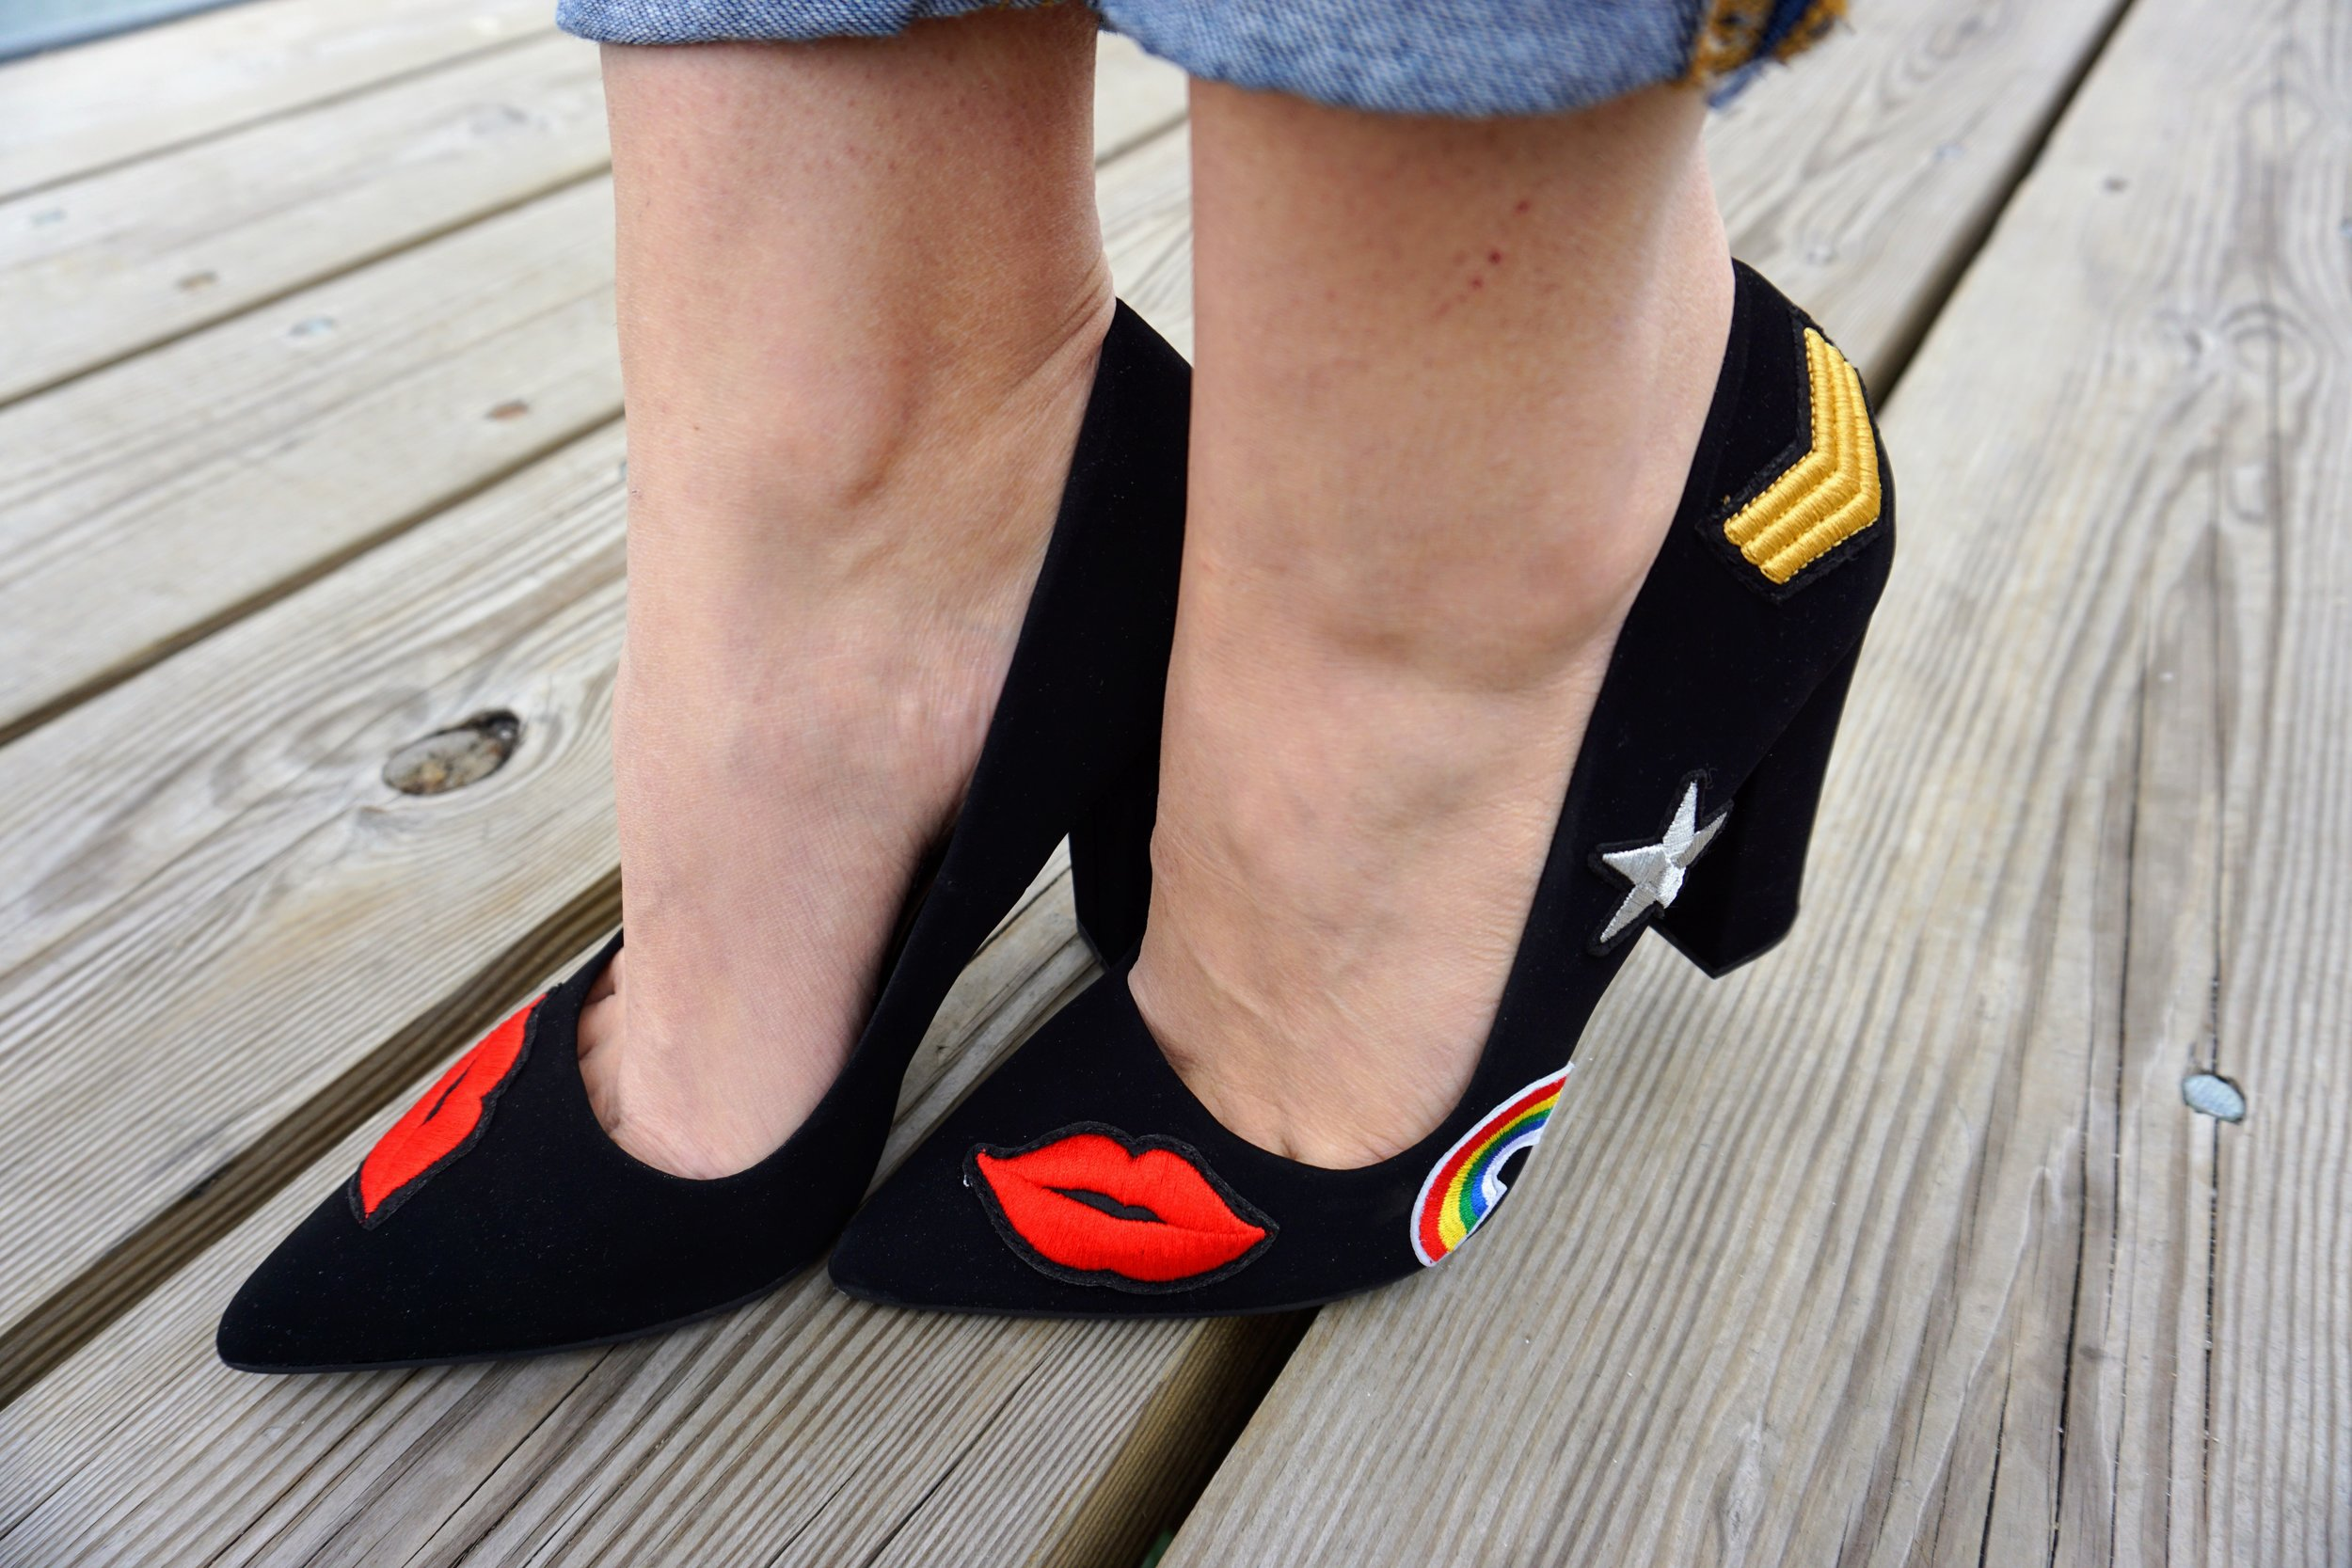 A close up of black heels with hearts, stars and rainbows on them.